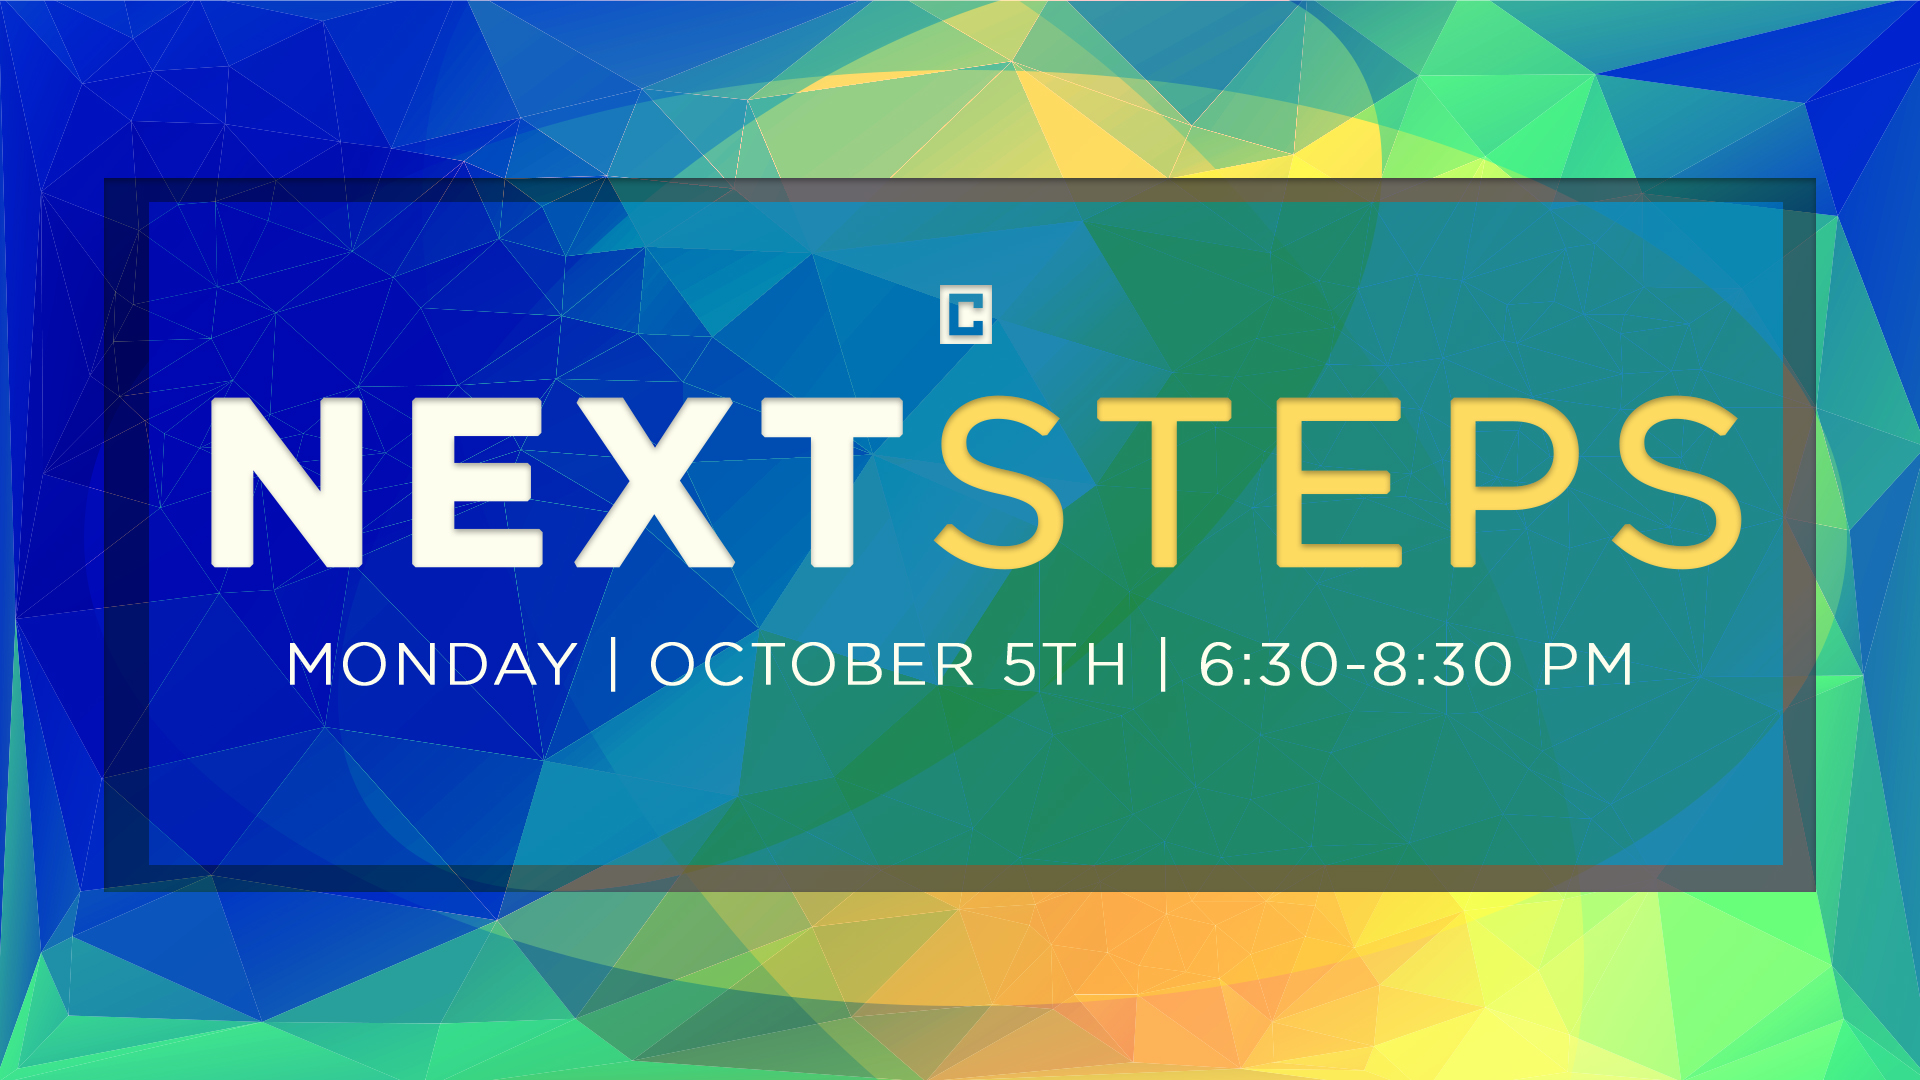 NEXT STEPS - October 5 - 6:30-8:30 PM    Next Steps is a process we've designed specifically to help you connect with Crossbridge. At  Next Steps you'll have a chance to meet staff, learn about what kind of church we are and how to take your next step in getting connected at Crossbridge and growing as a follower of Jesus. Childcare is available (birth-5th grade) with a reservation. We'll serve the best meal you have ever had (okay it may not be the best but it will be good!) Email  HERE to make a reservation for the class and childcare.